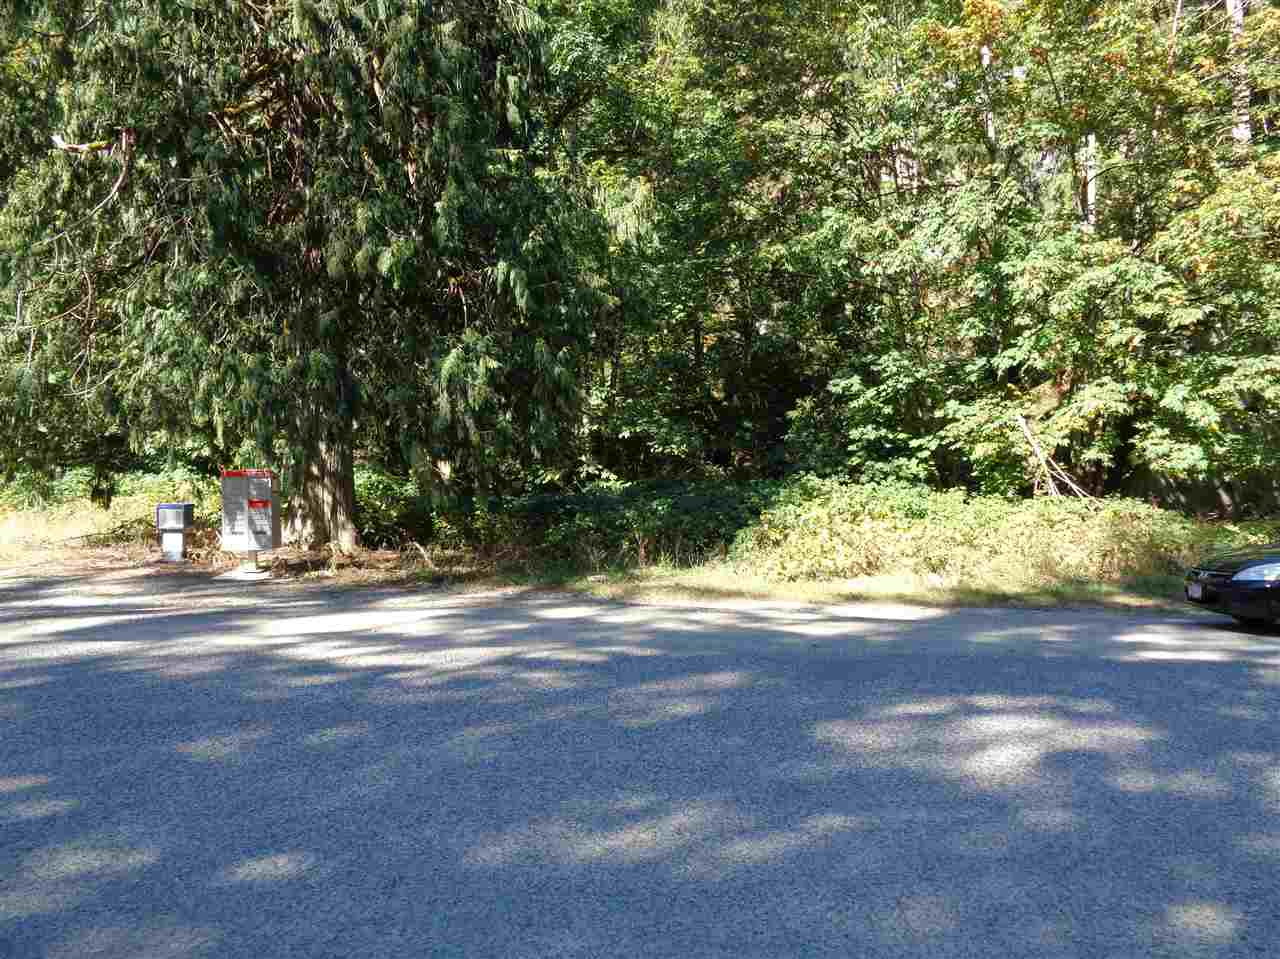 Water front property on Silverhope Creek! 4.54 acres, flat portion is approx. 1.6 acre. 3 older cabins on the property - Bring your ideas! The seller has an active water licence.